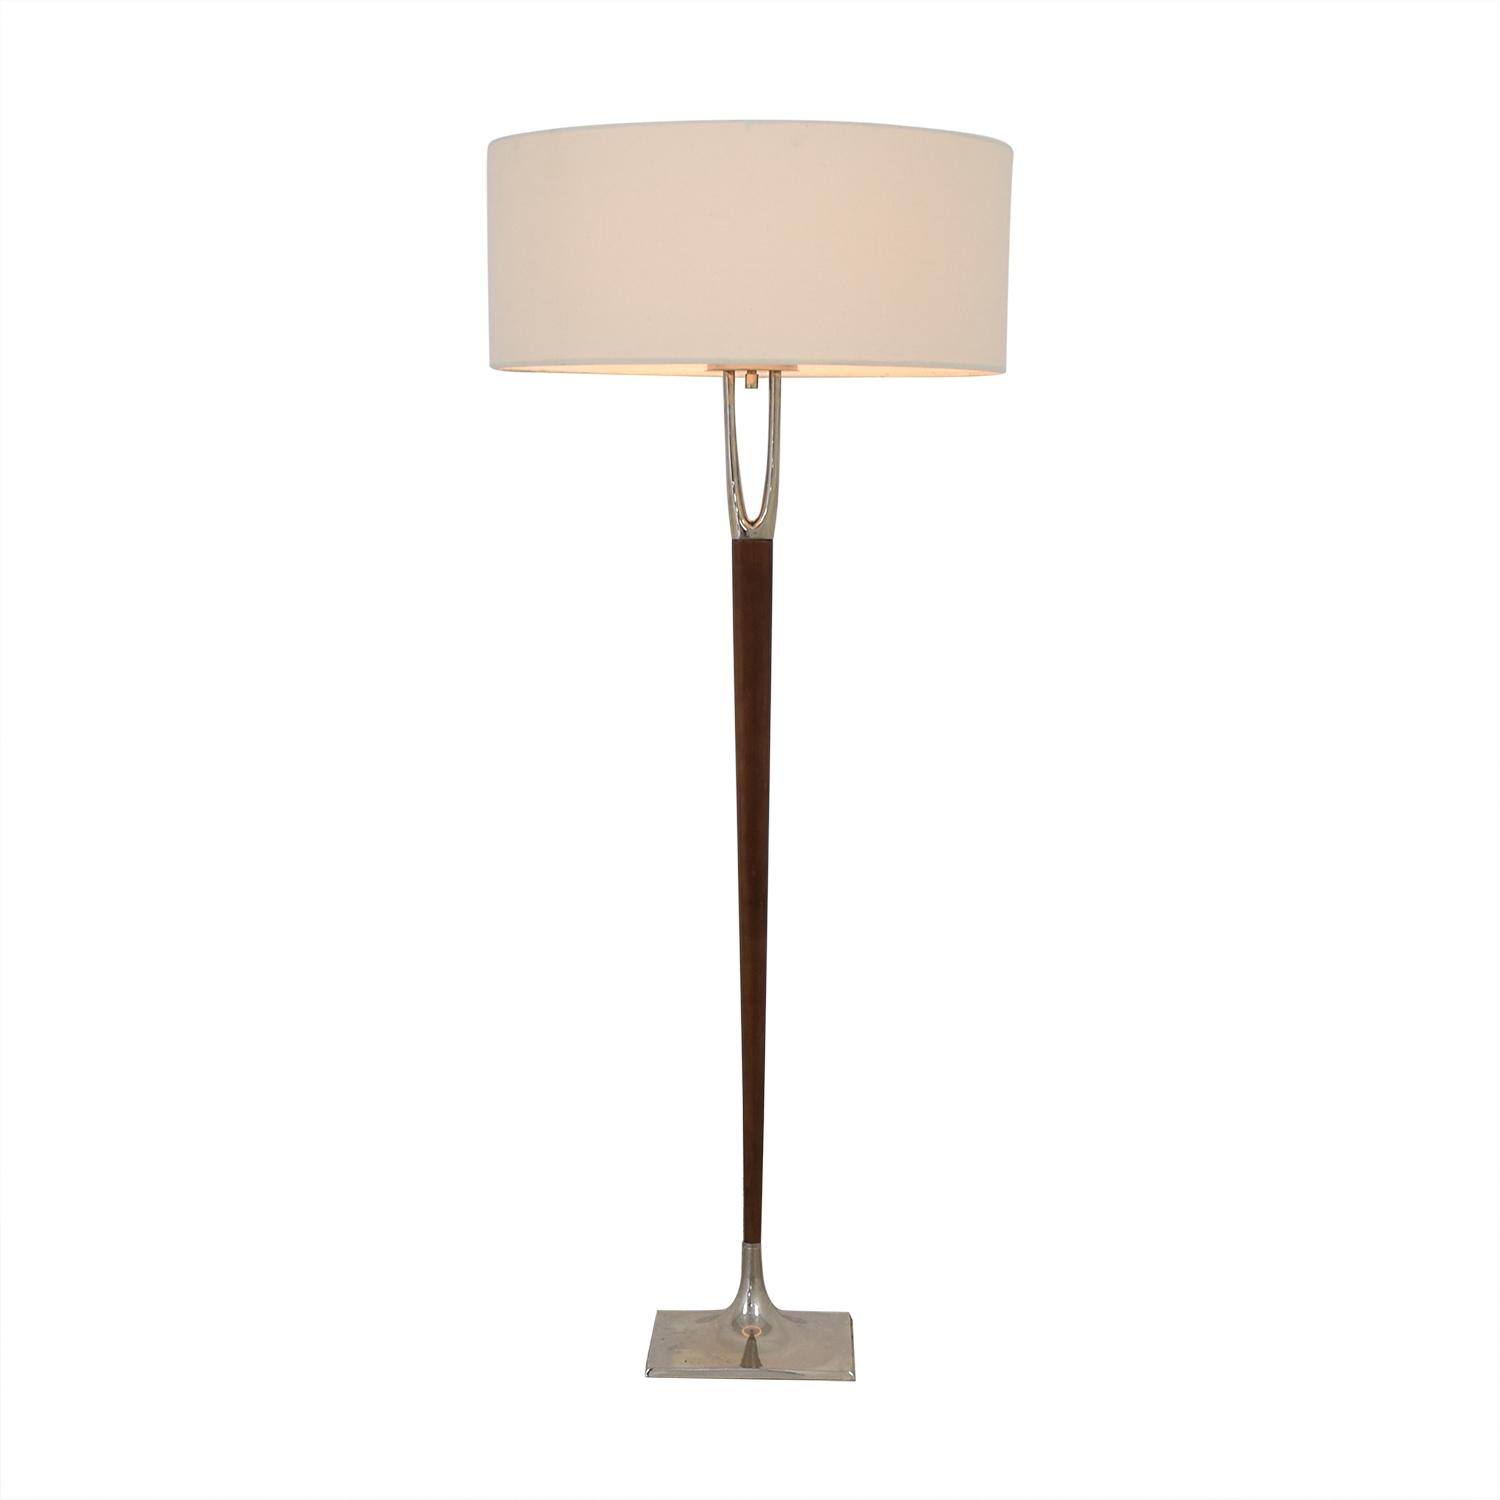 Rejuvenation Rejuvenation Tall Floor Lamp nj